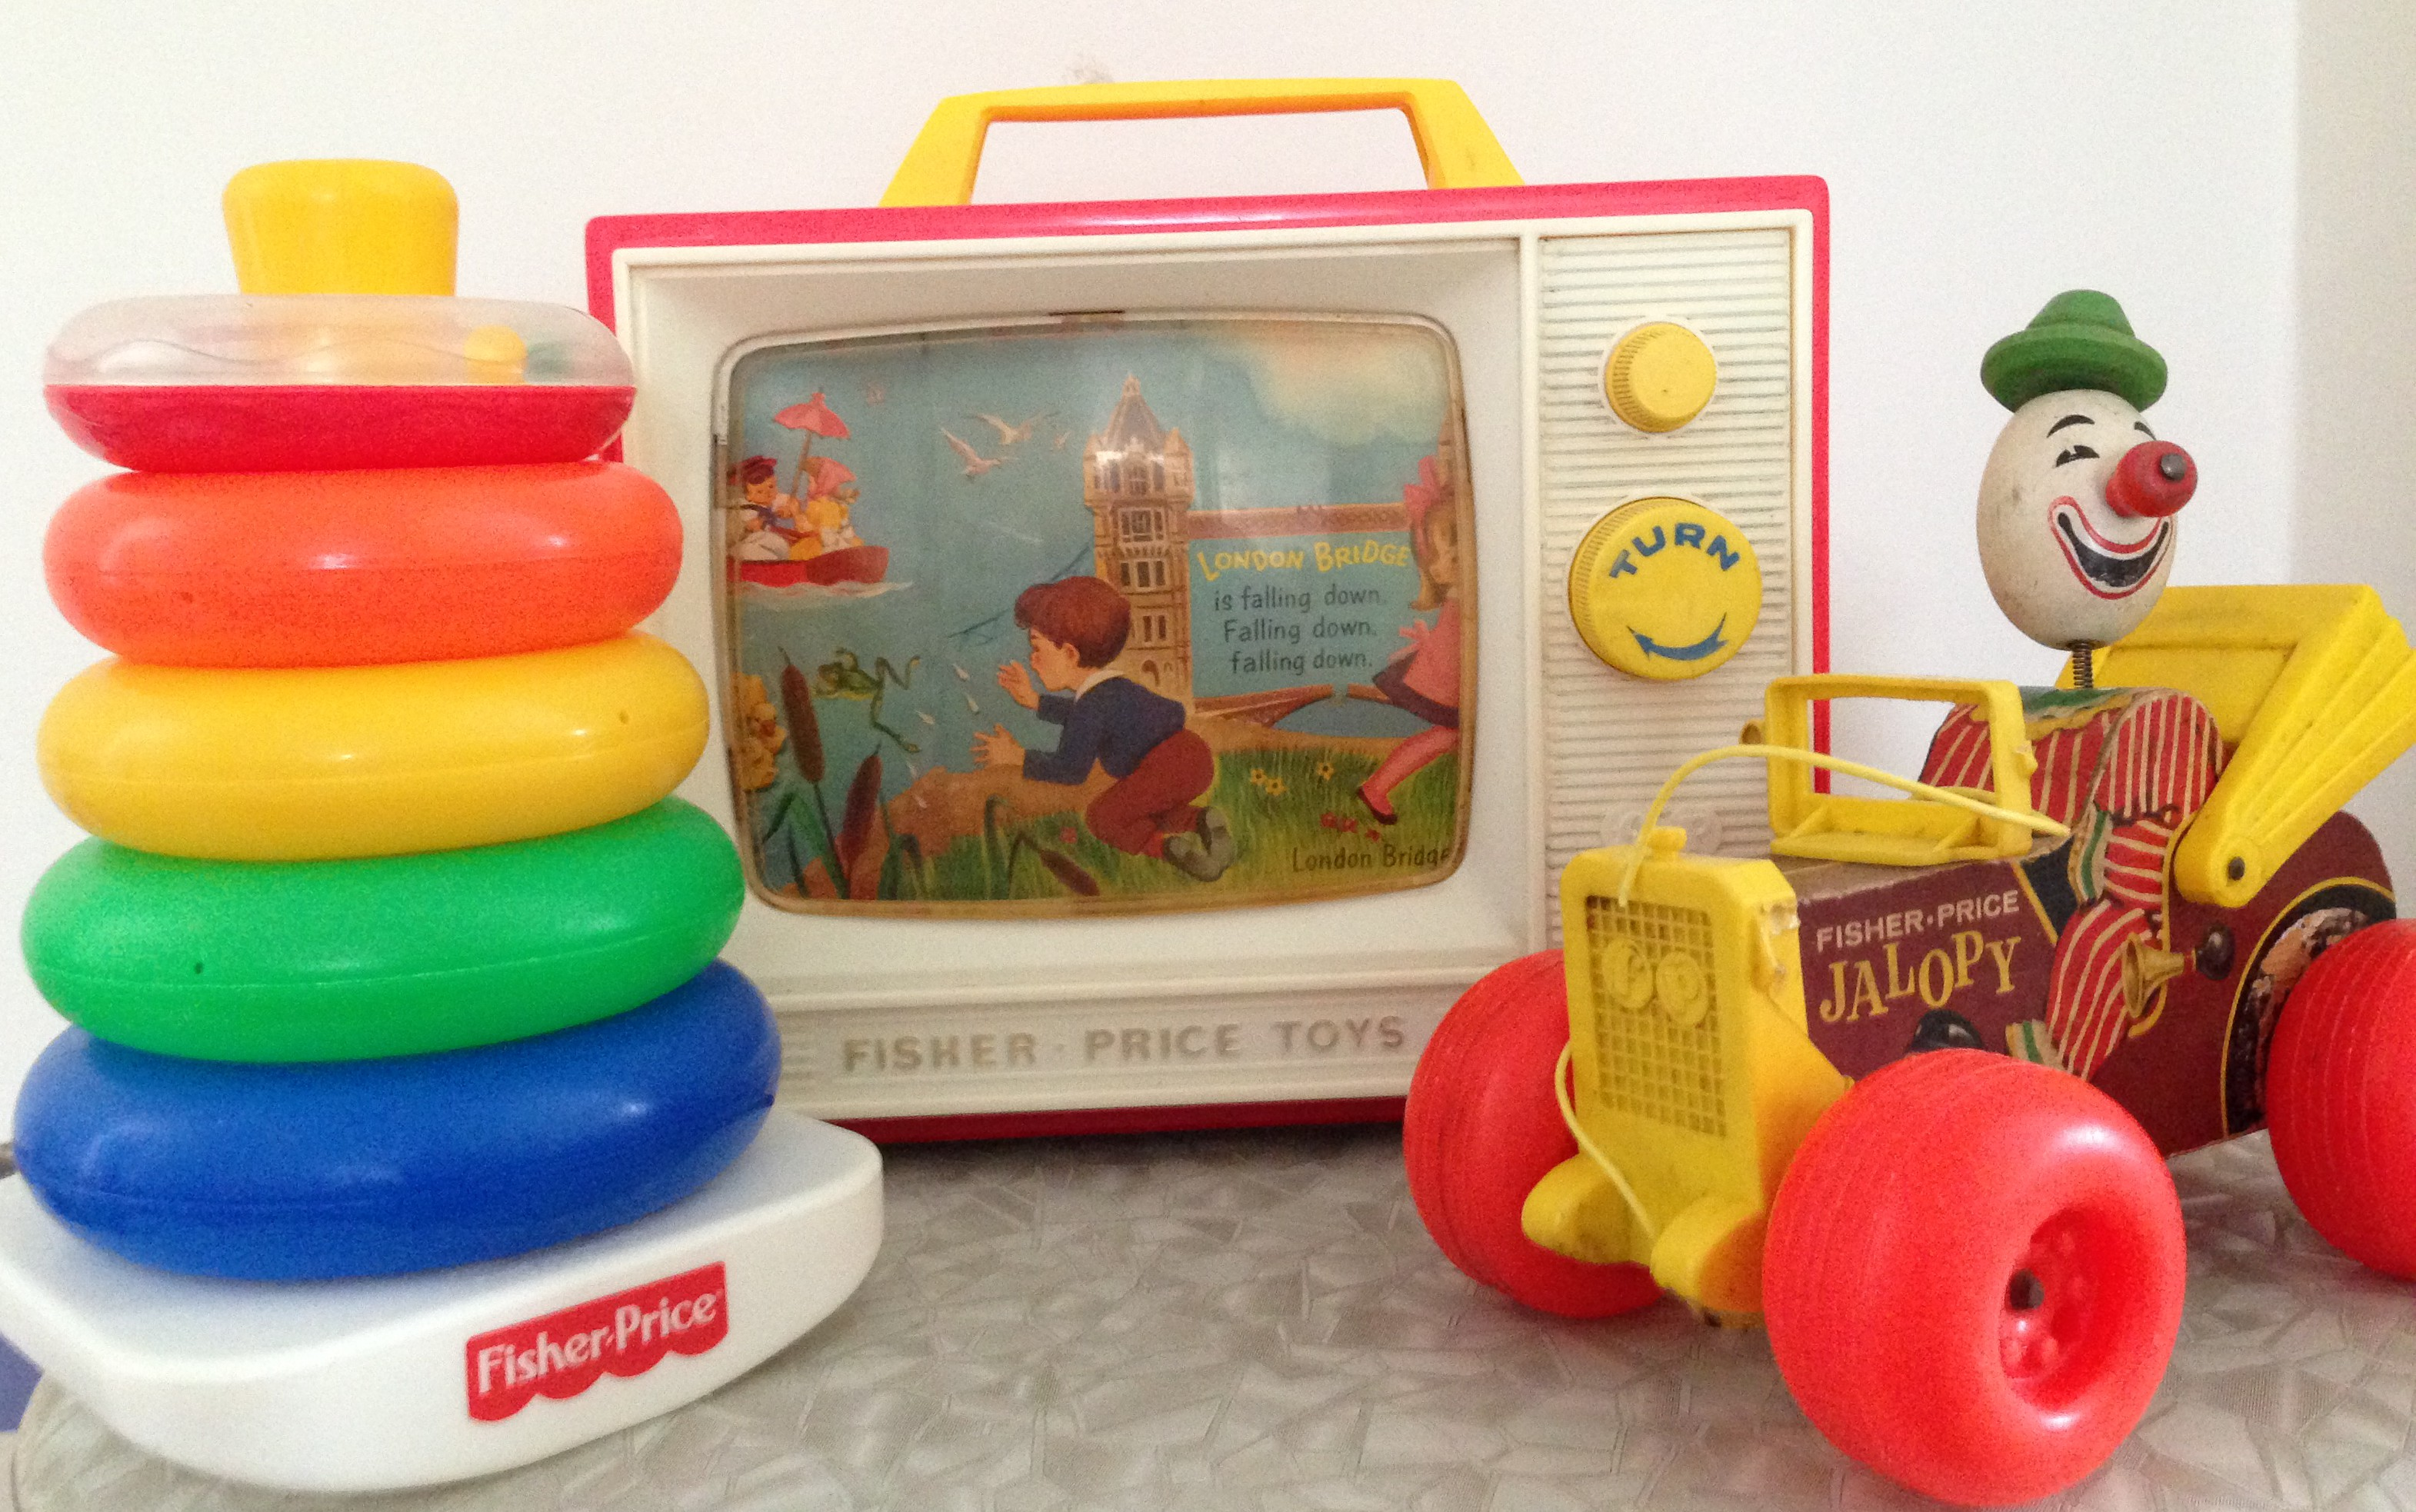 A vintage ticket to fly and dream the Fisher Price Airport